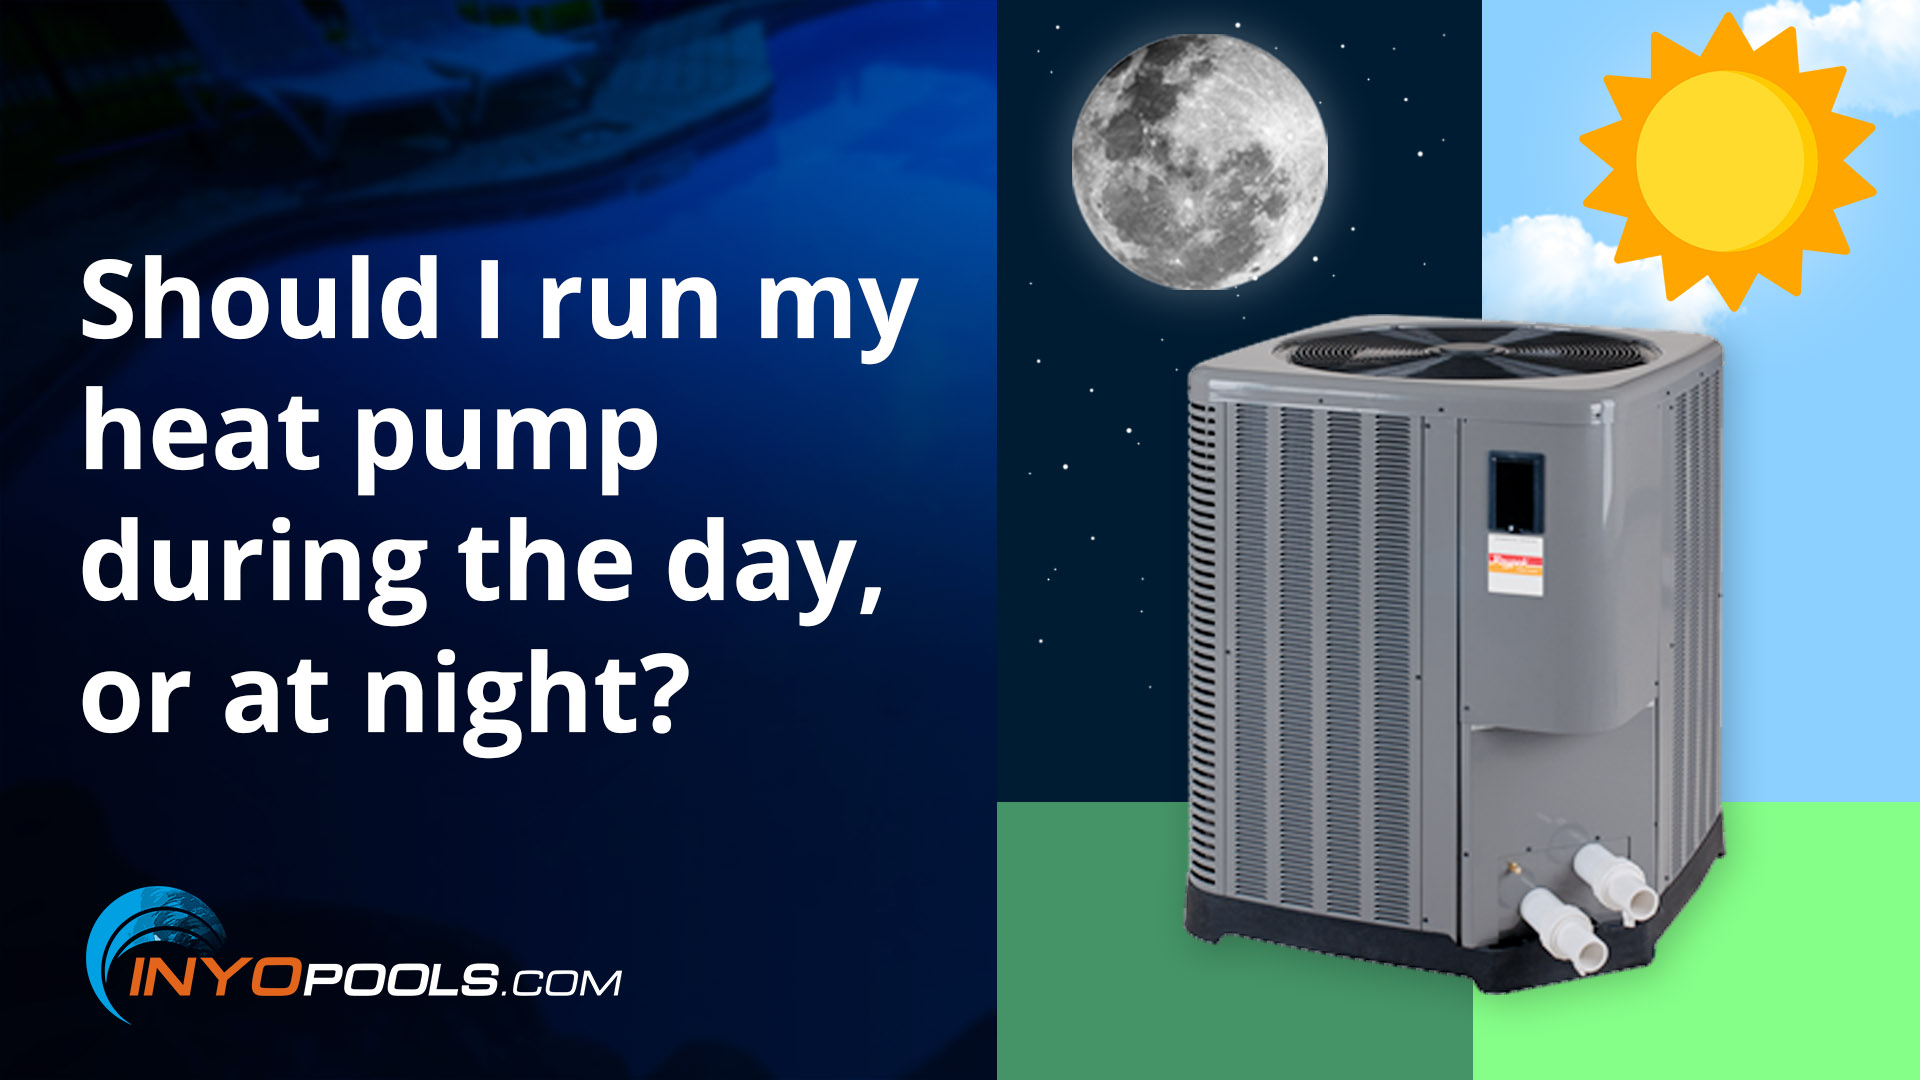 Should I run my heat pump during the day or at night?